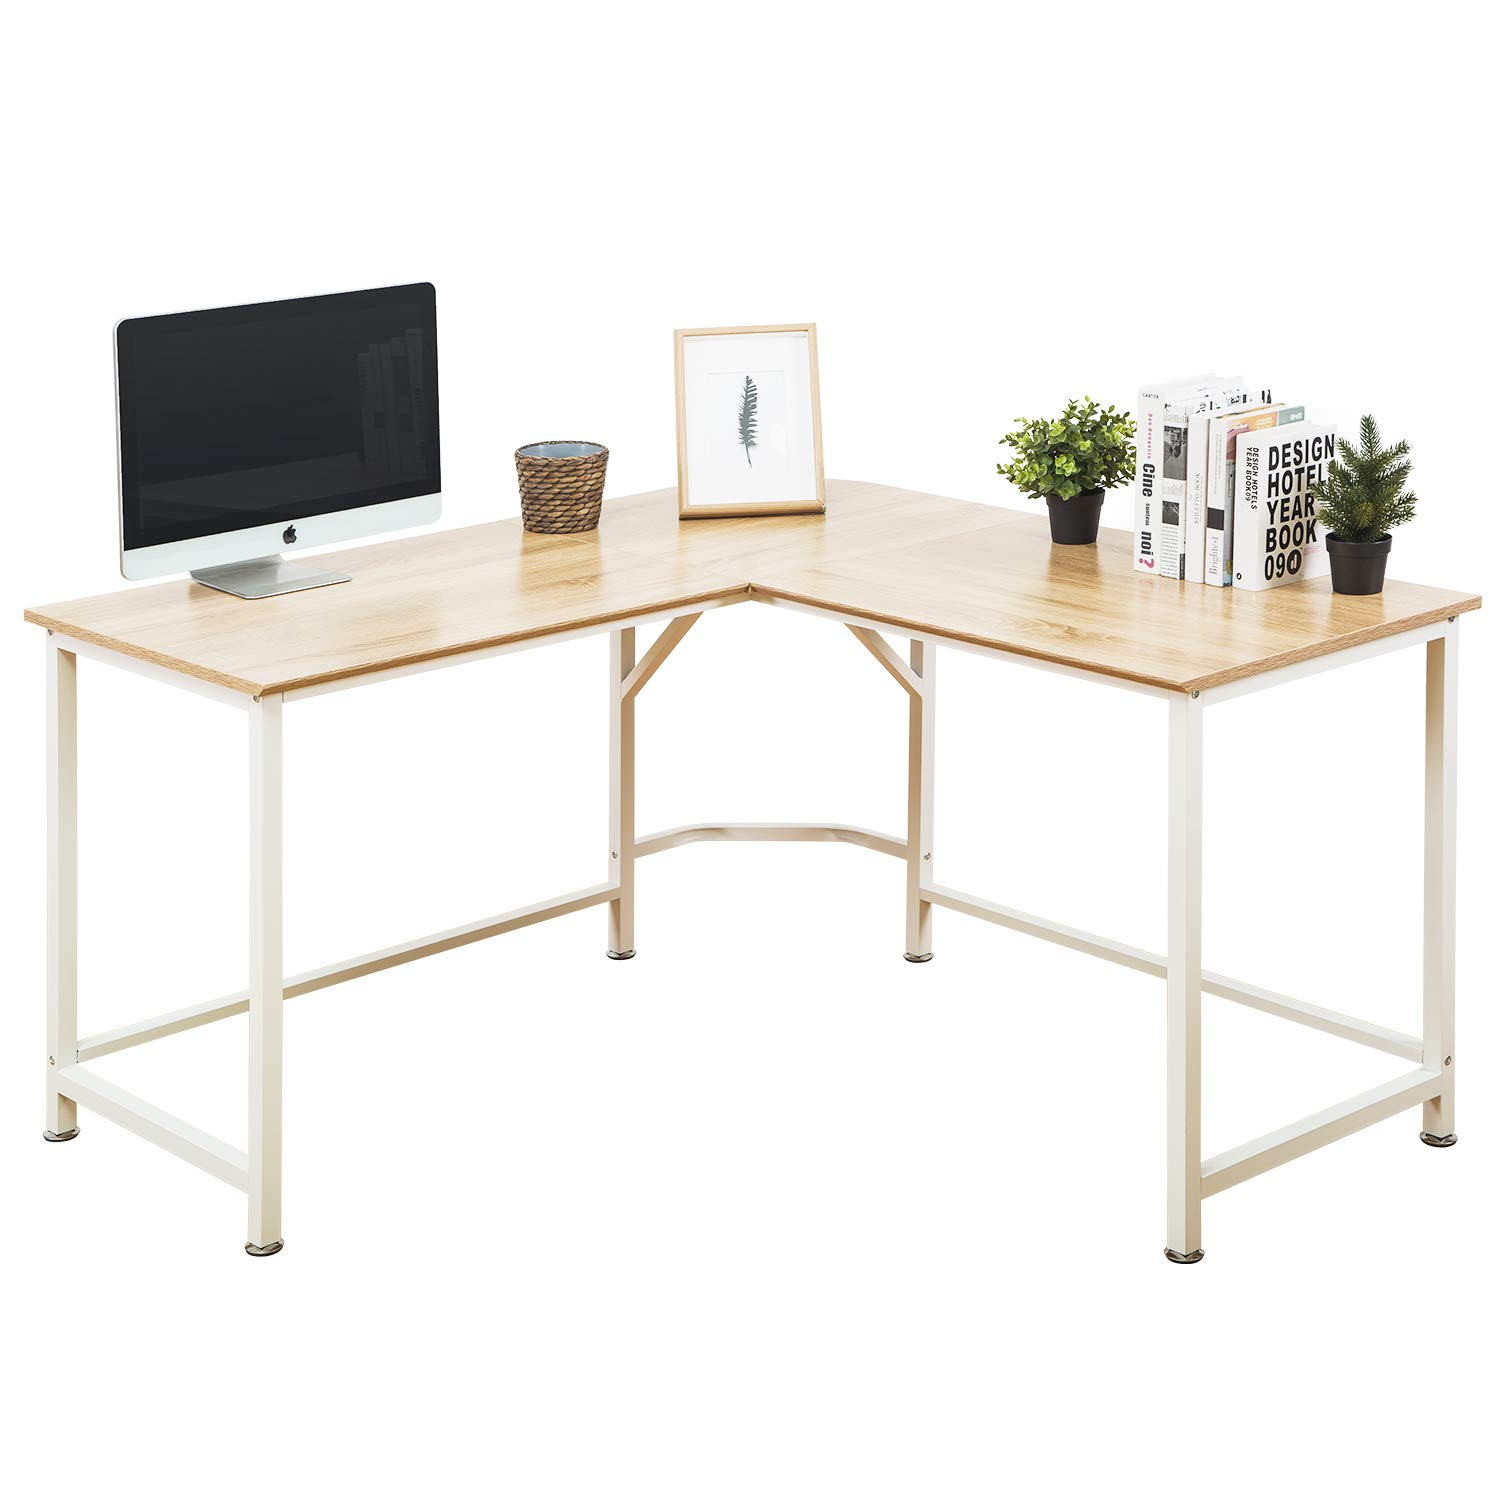 TOPSKY Computer Desk 55'' x 55'' with 24'' Deep L-Shaped Desk Corner Workstation Bevel Edge Design(Oak) by TOPSKY